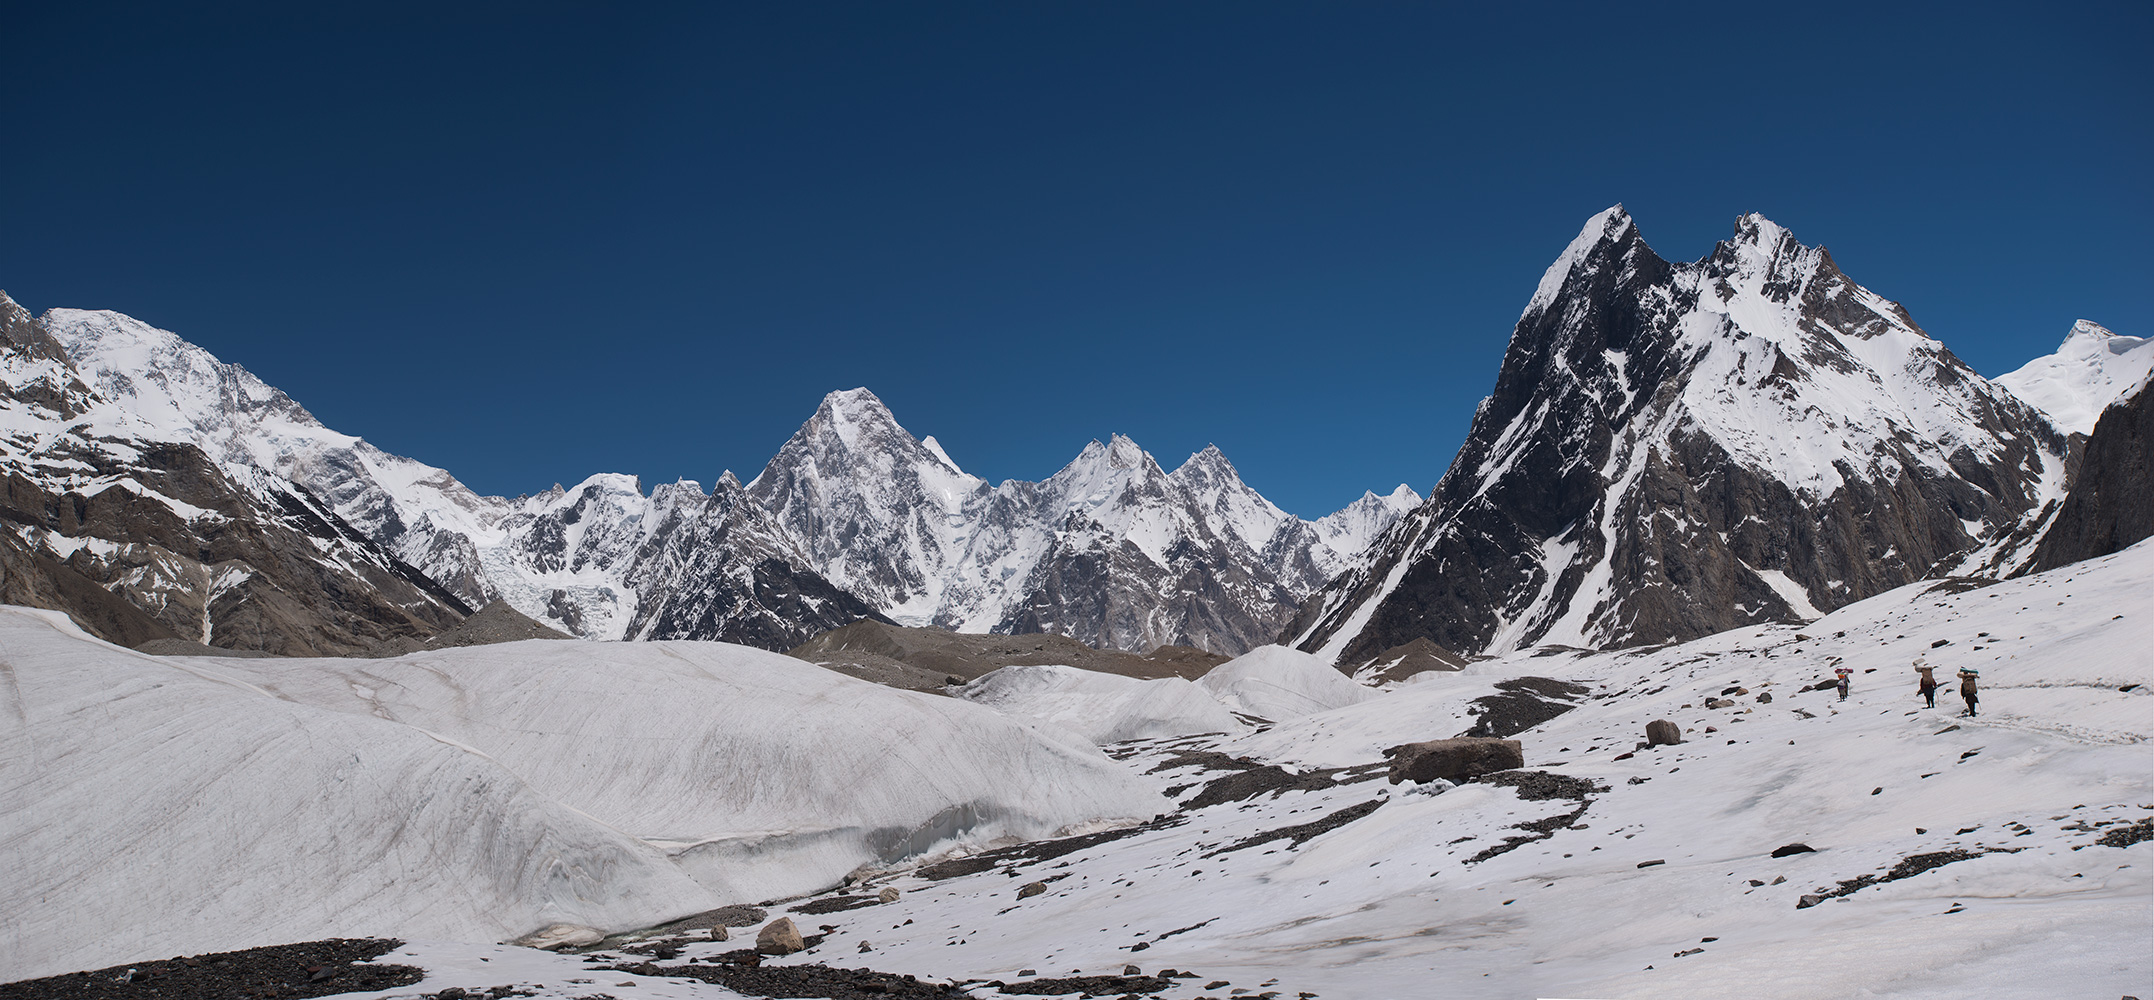 Approaching Concordia. Gasherbrum IV in the centre, Broad Peak to the left, Mitre Peak to the right.